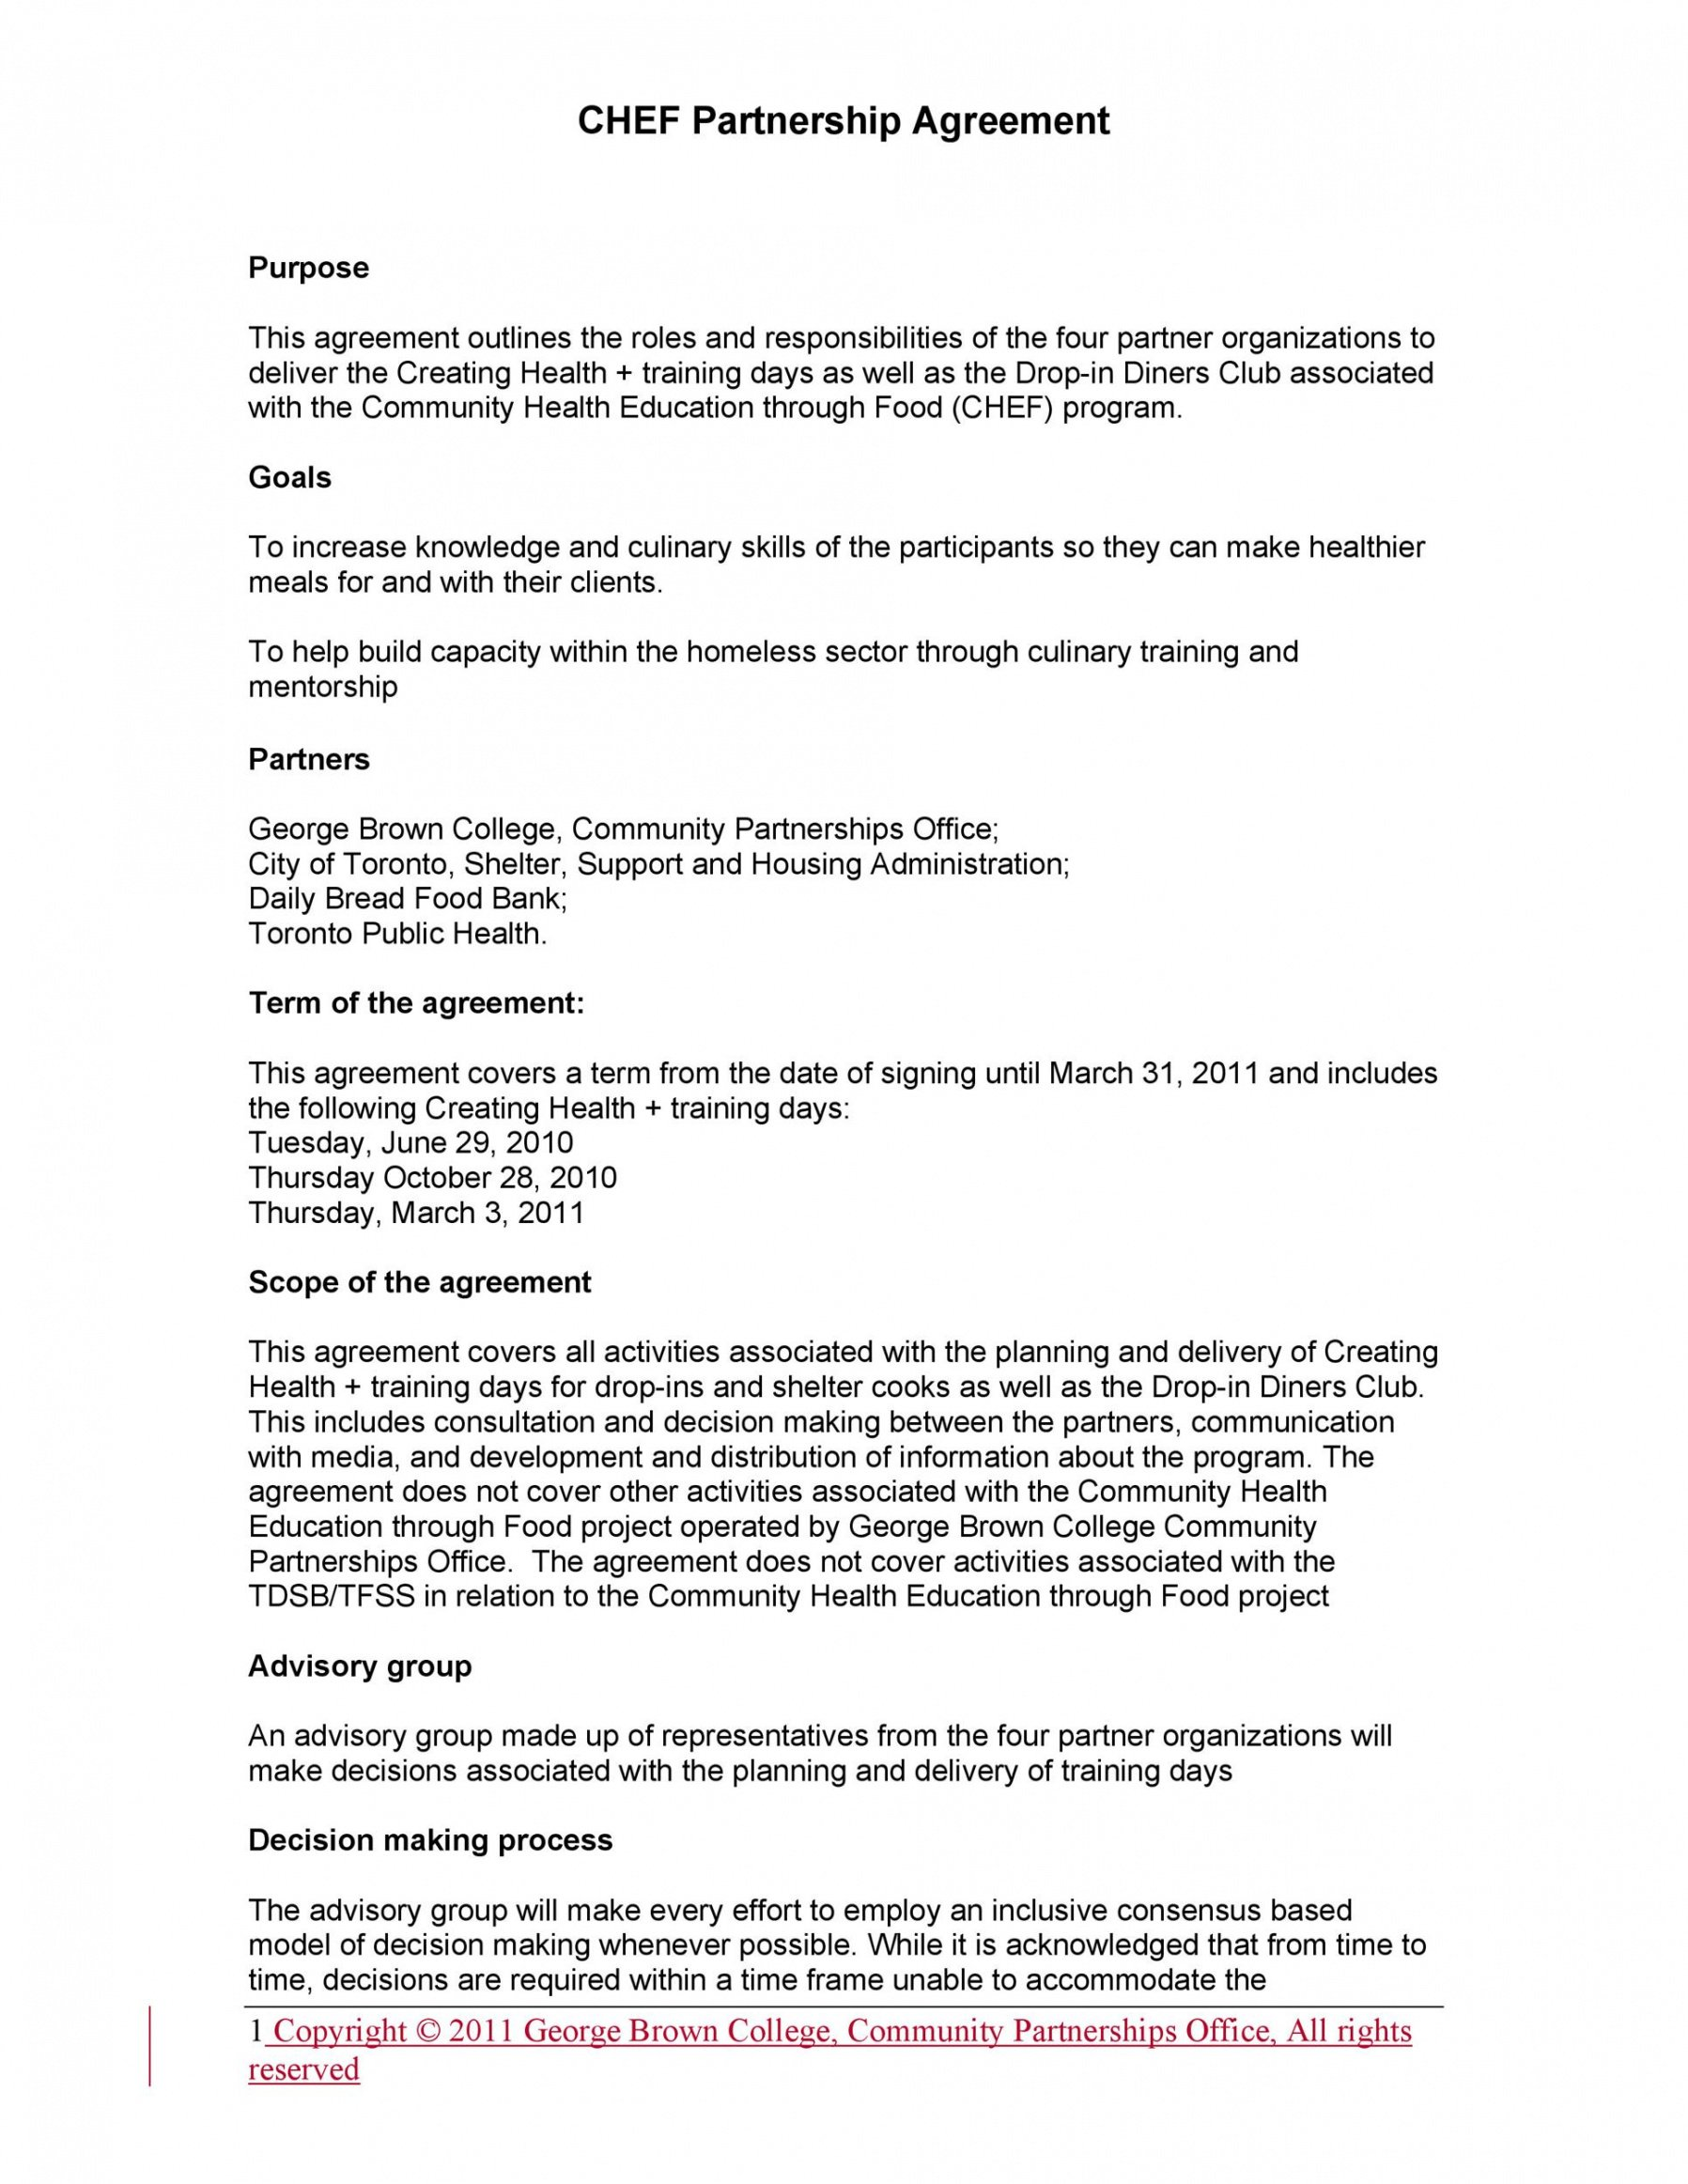 Costum General Partnership Contract Template Word Example